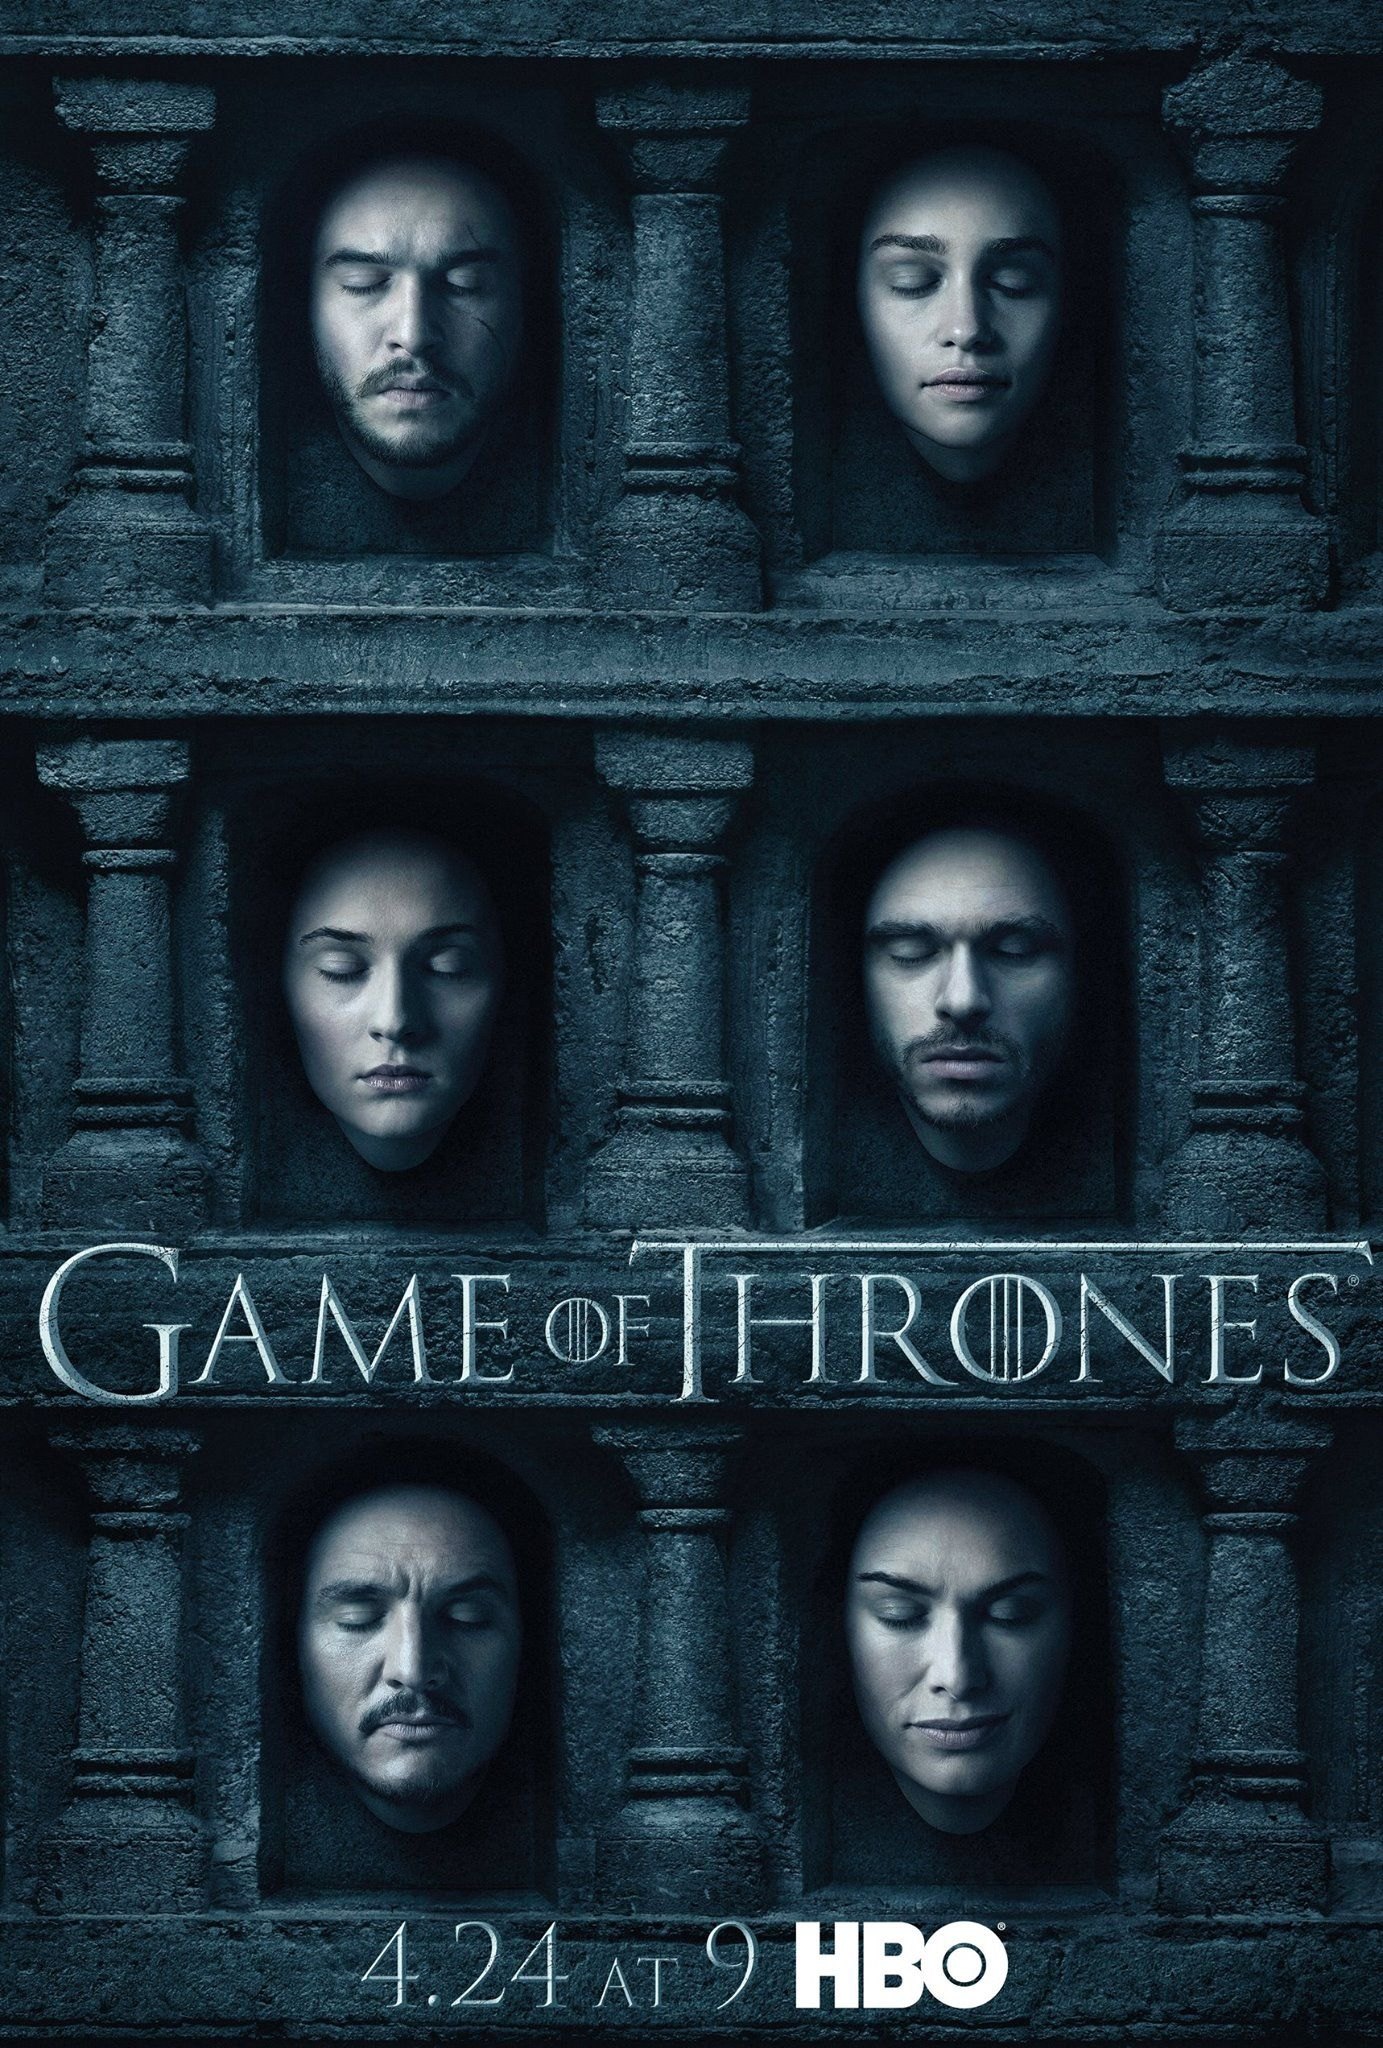 Game Of Thrones Character Posters Debut For Season 6 Pôster De Game Of Thrones Temporadas Game Of Thrones